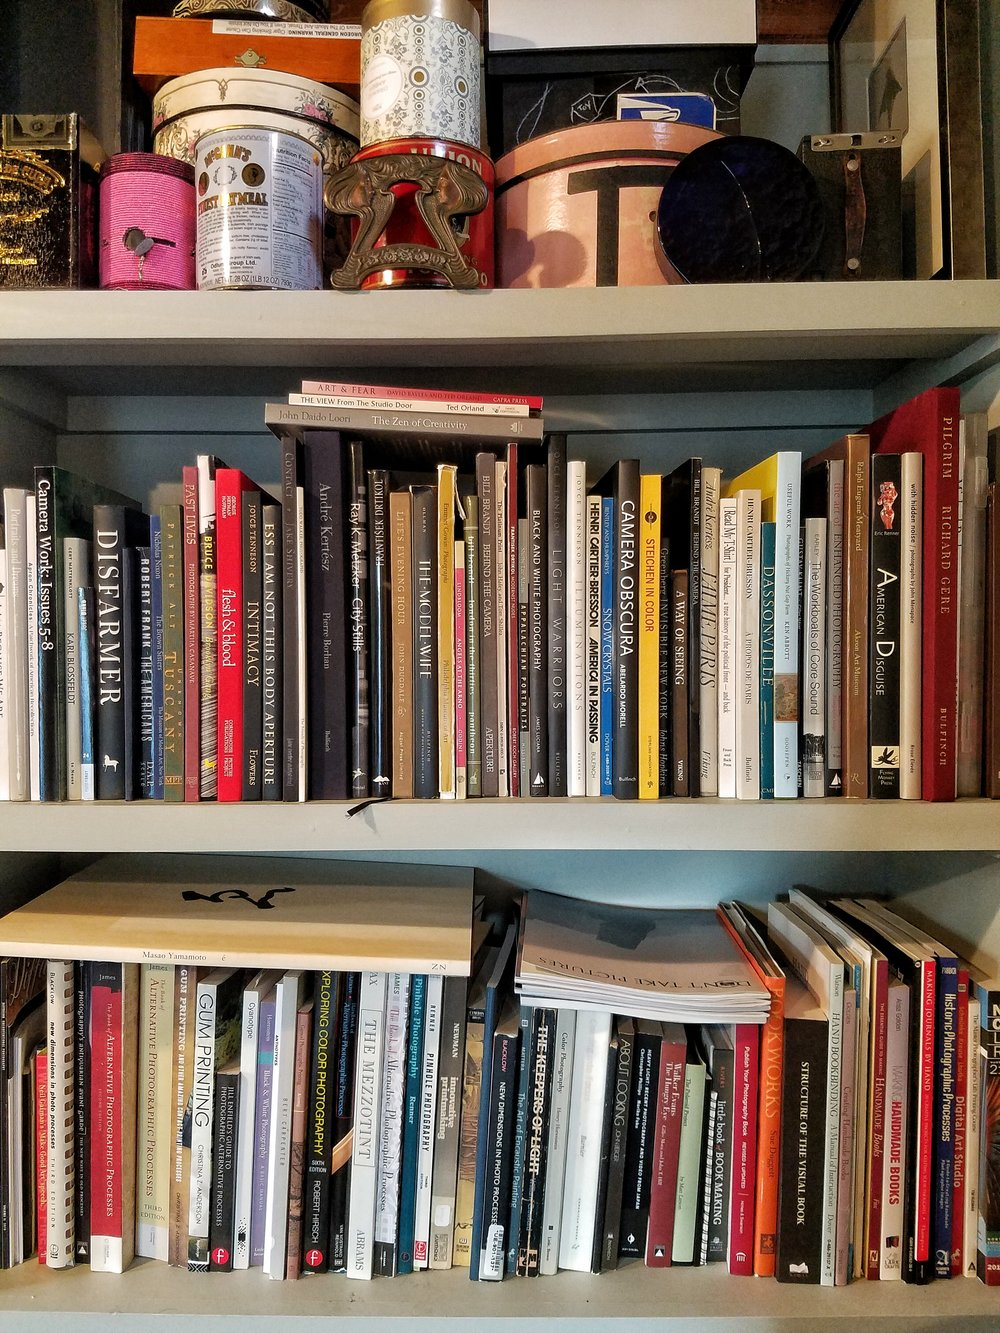 Diana H. Bloomfield 's studio shelves.